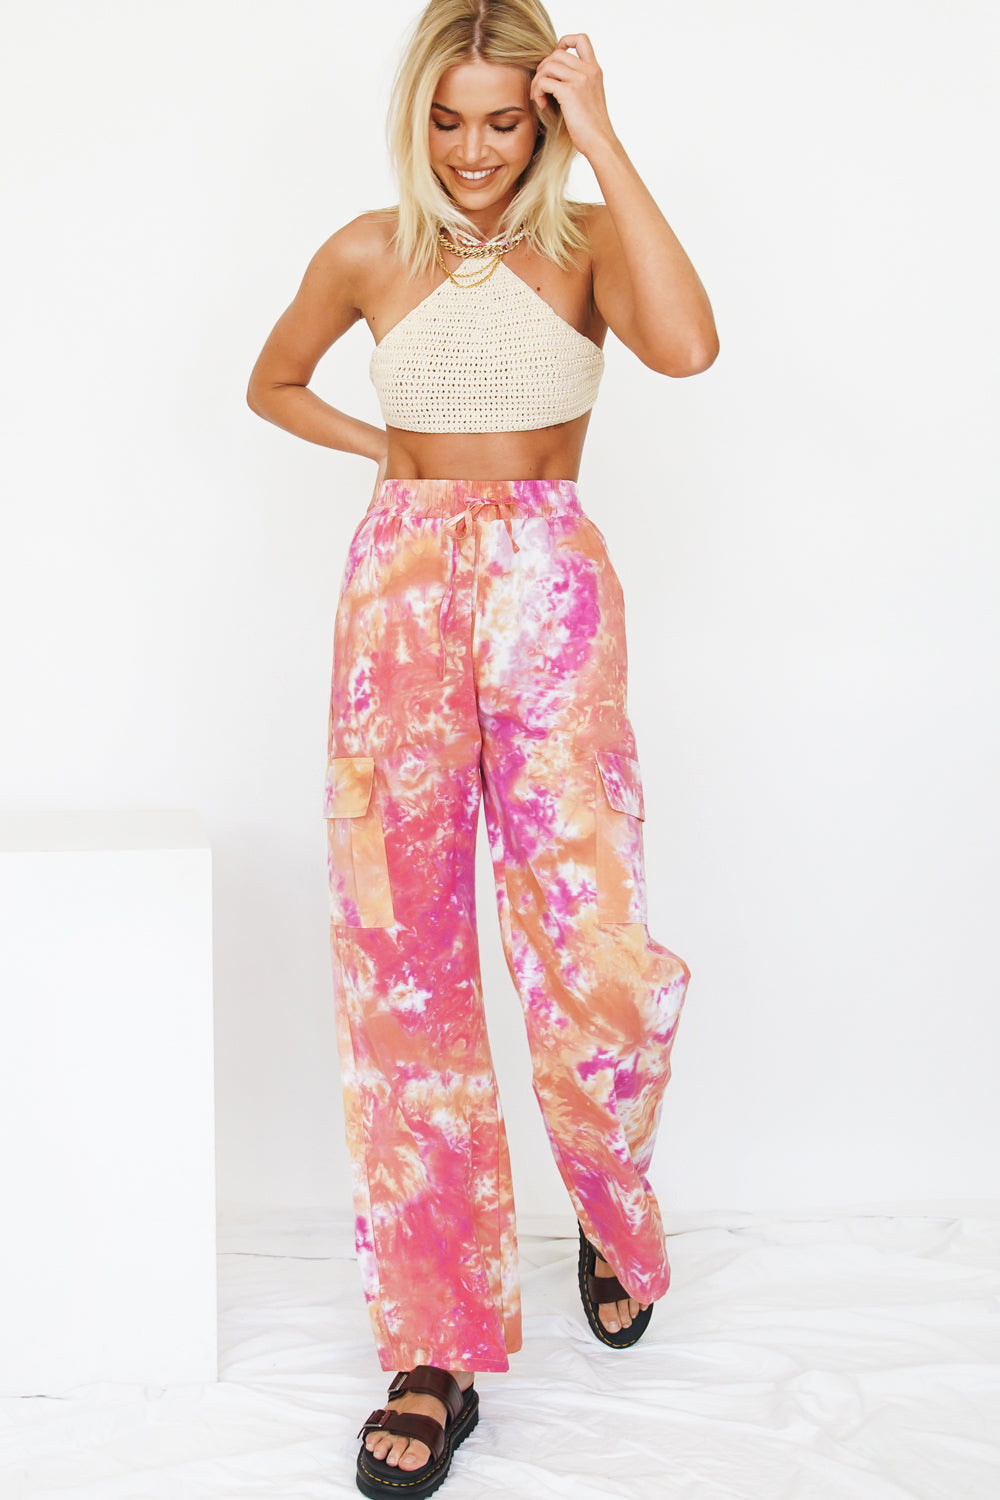 VRG GRL You've Got It Pants // Tie Dye